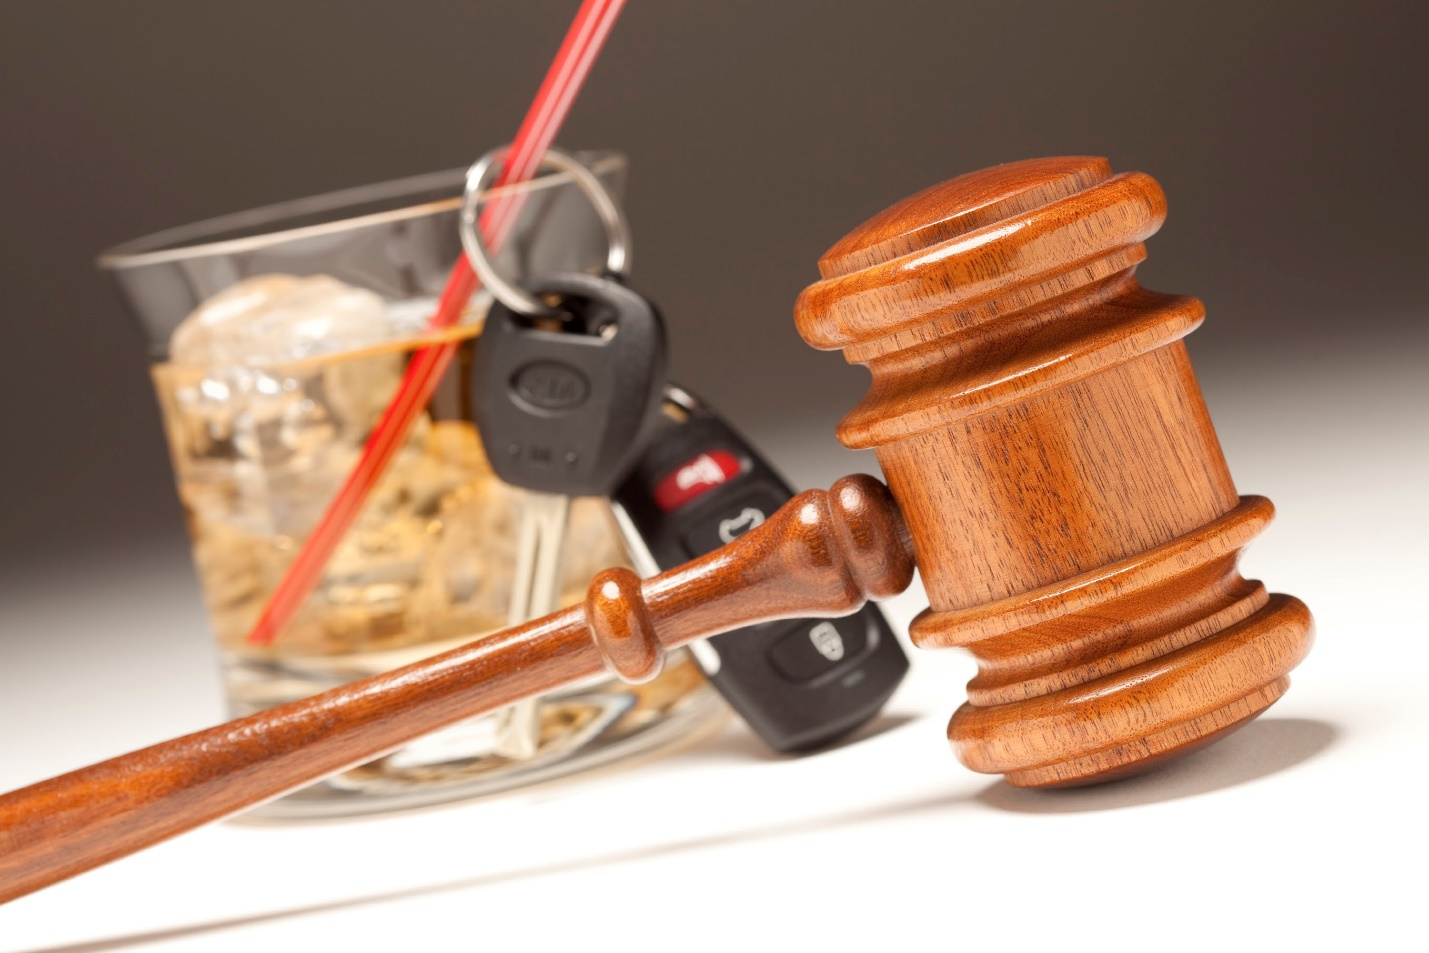 fayetteville dui accident victim attorney - Fayetteville, AR Attorney for Car Accident Deaths